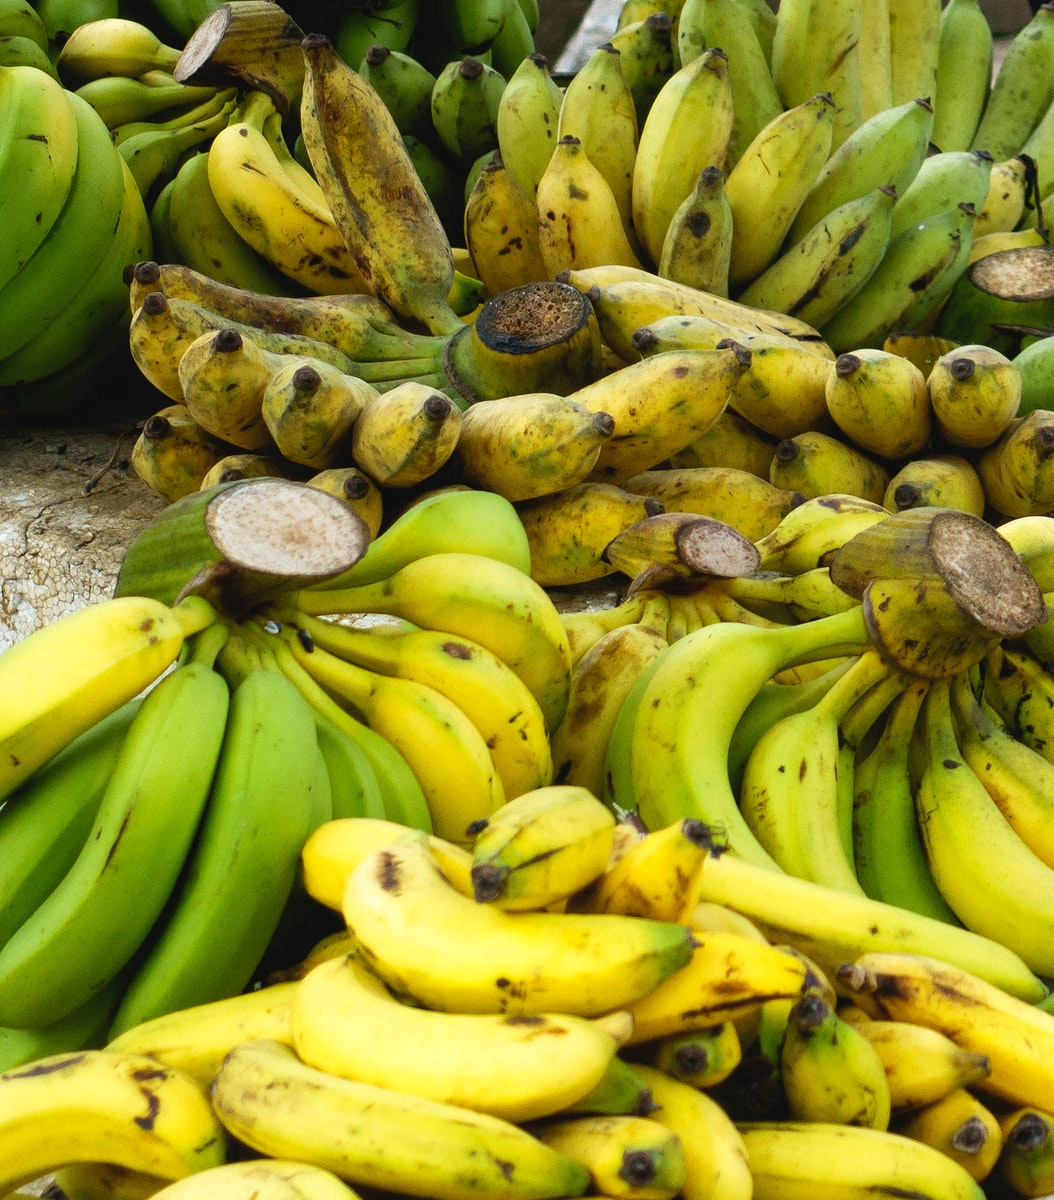 Pile of bananas for sale